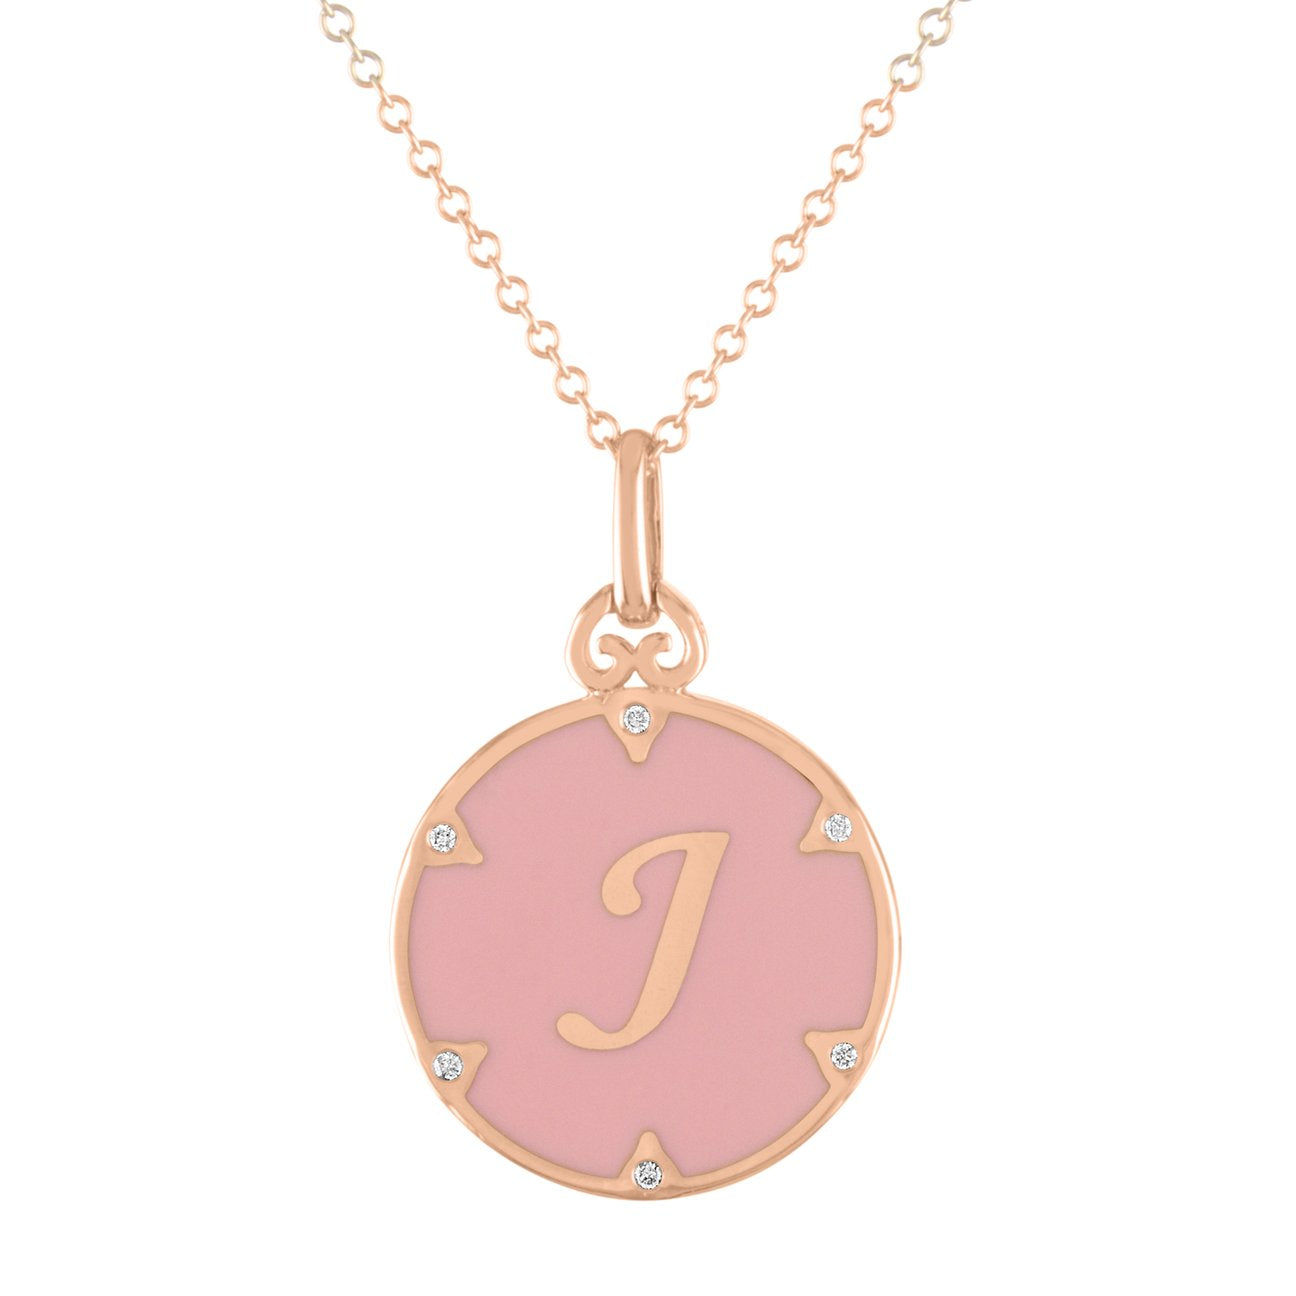 Enamel Initial Coin Pendant Necklace